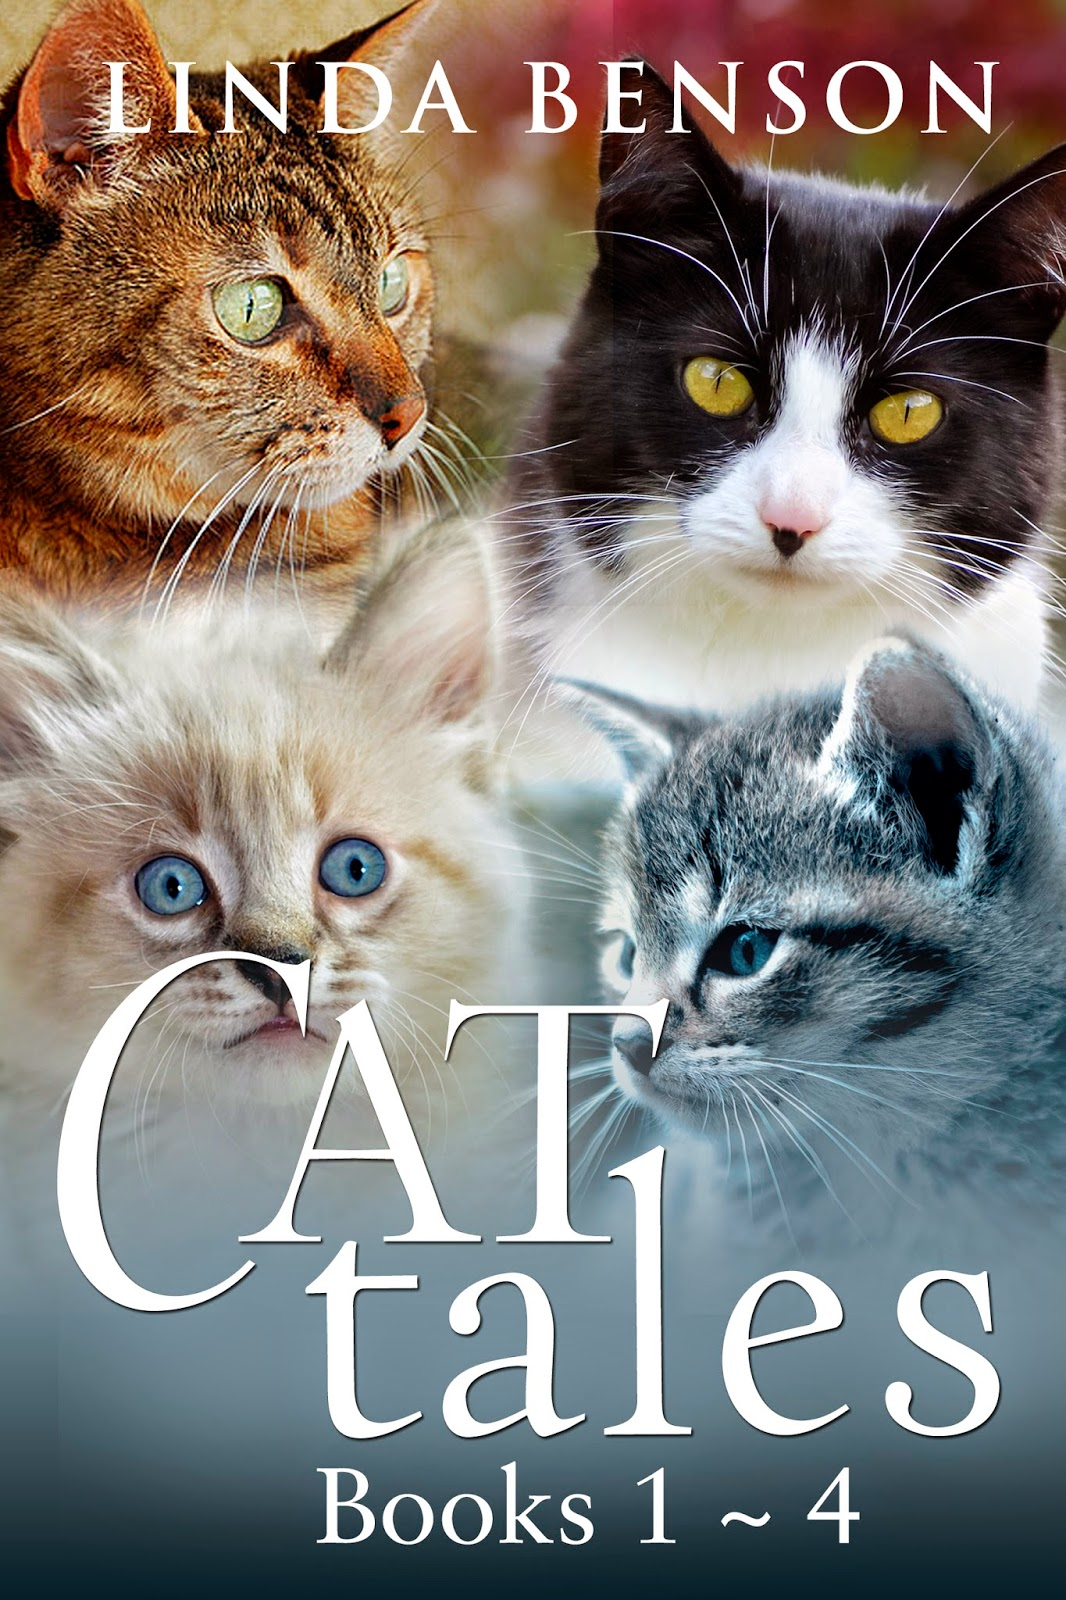 http://www.amazon.com/Cat-Tales-Books-Linda-Benson-ebook/dp/B00P5KMD28/ref=sr_1_2?s=digital-text&ie=UTF8&qid=1415129387&sr=1-2&keywords=Cat+Tales